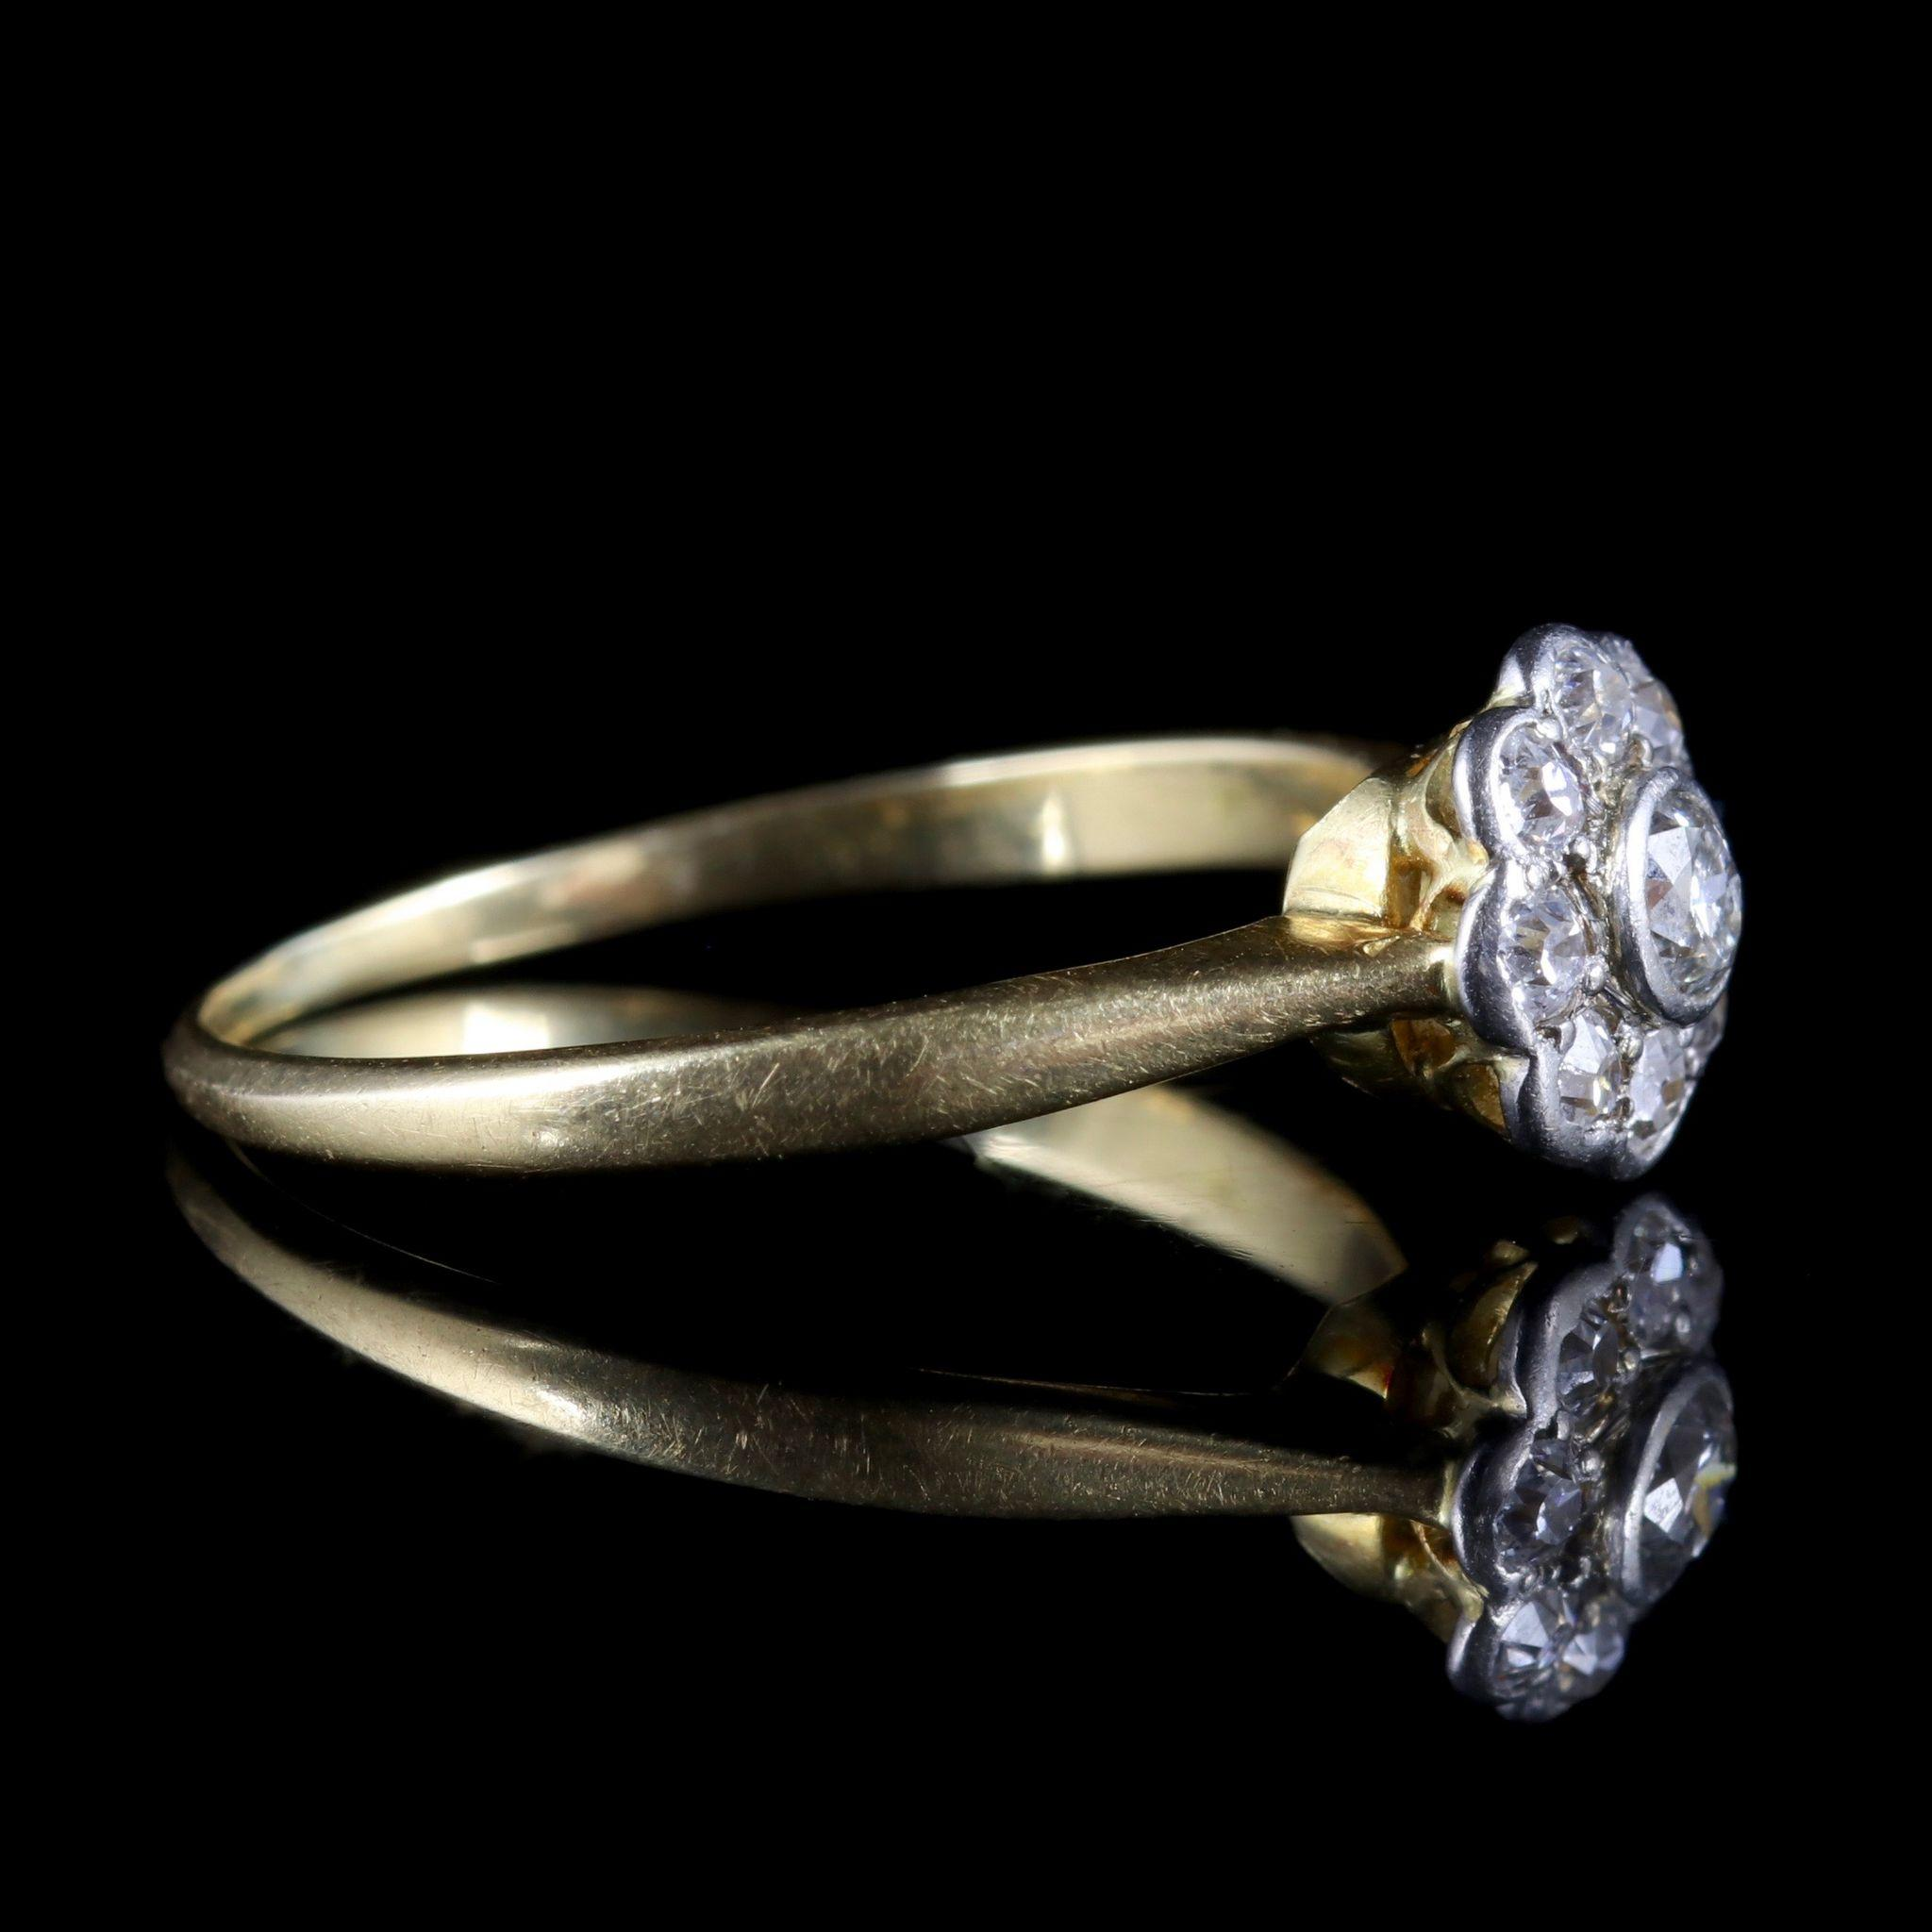 Antique Edwardian Diamond Cluster Ring 18ct Gold from antique